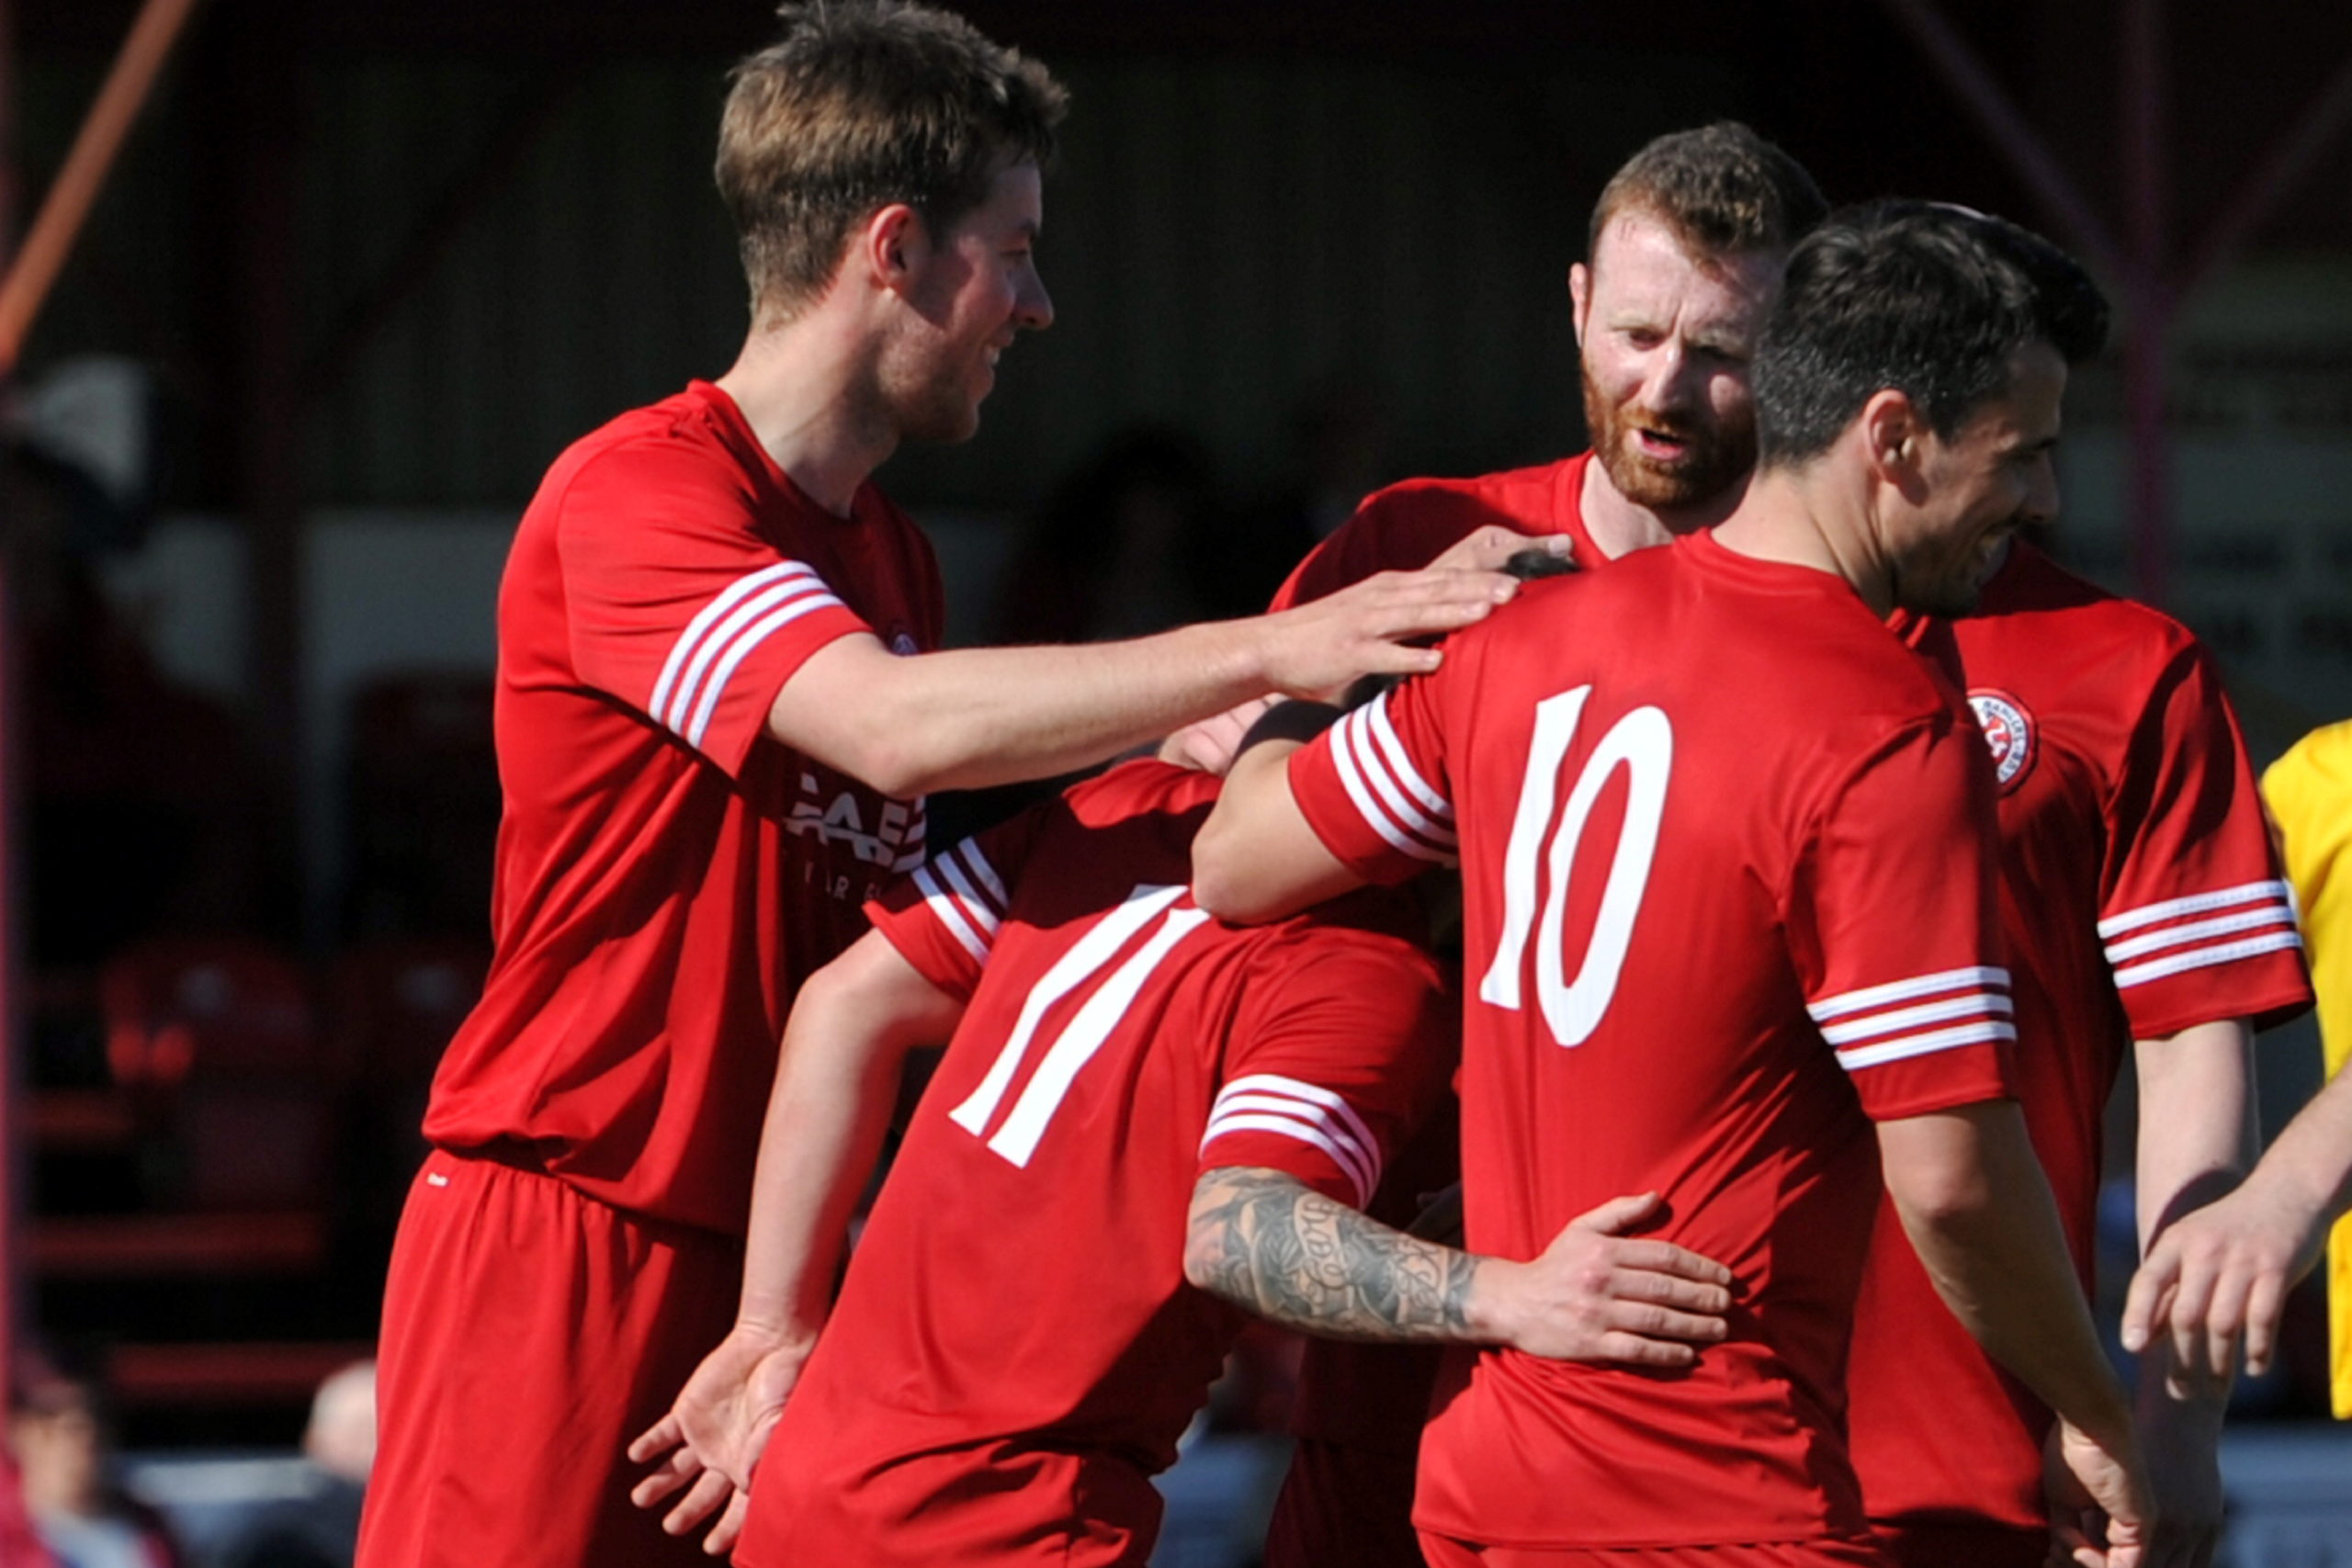 Champions Brora Rangers will meet Inverurie Locos on October 17.